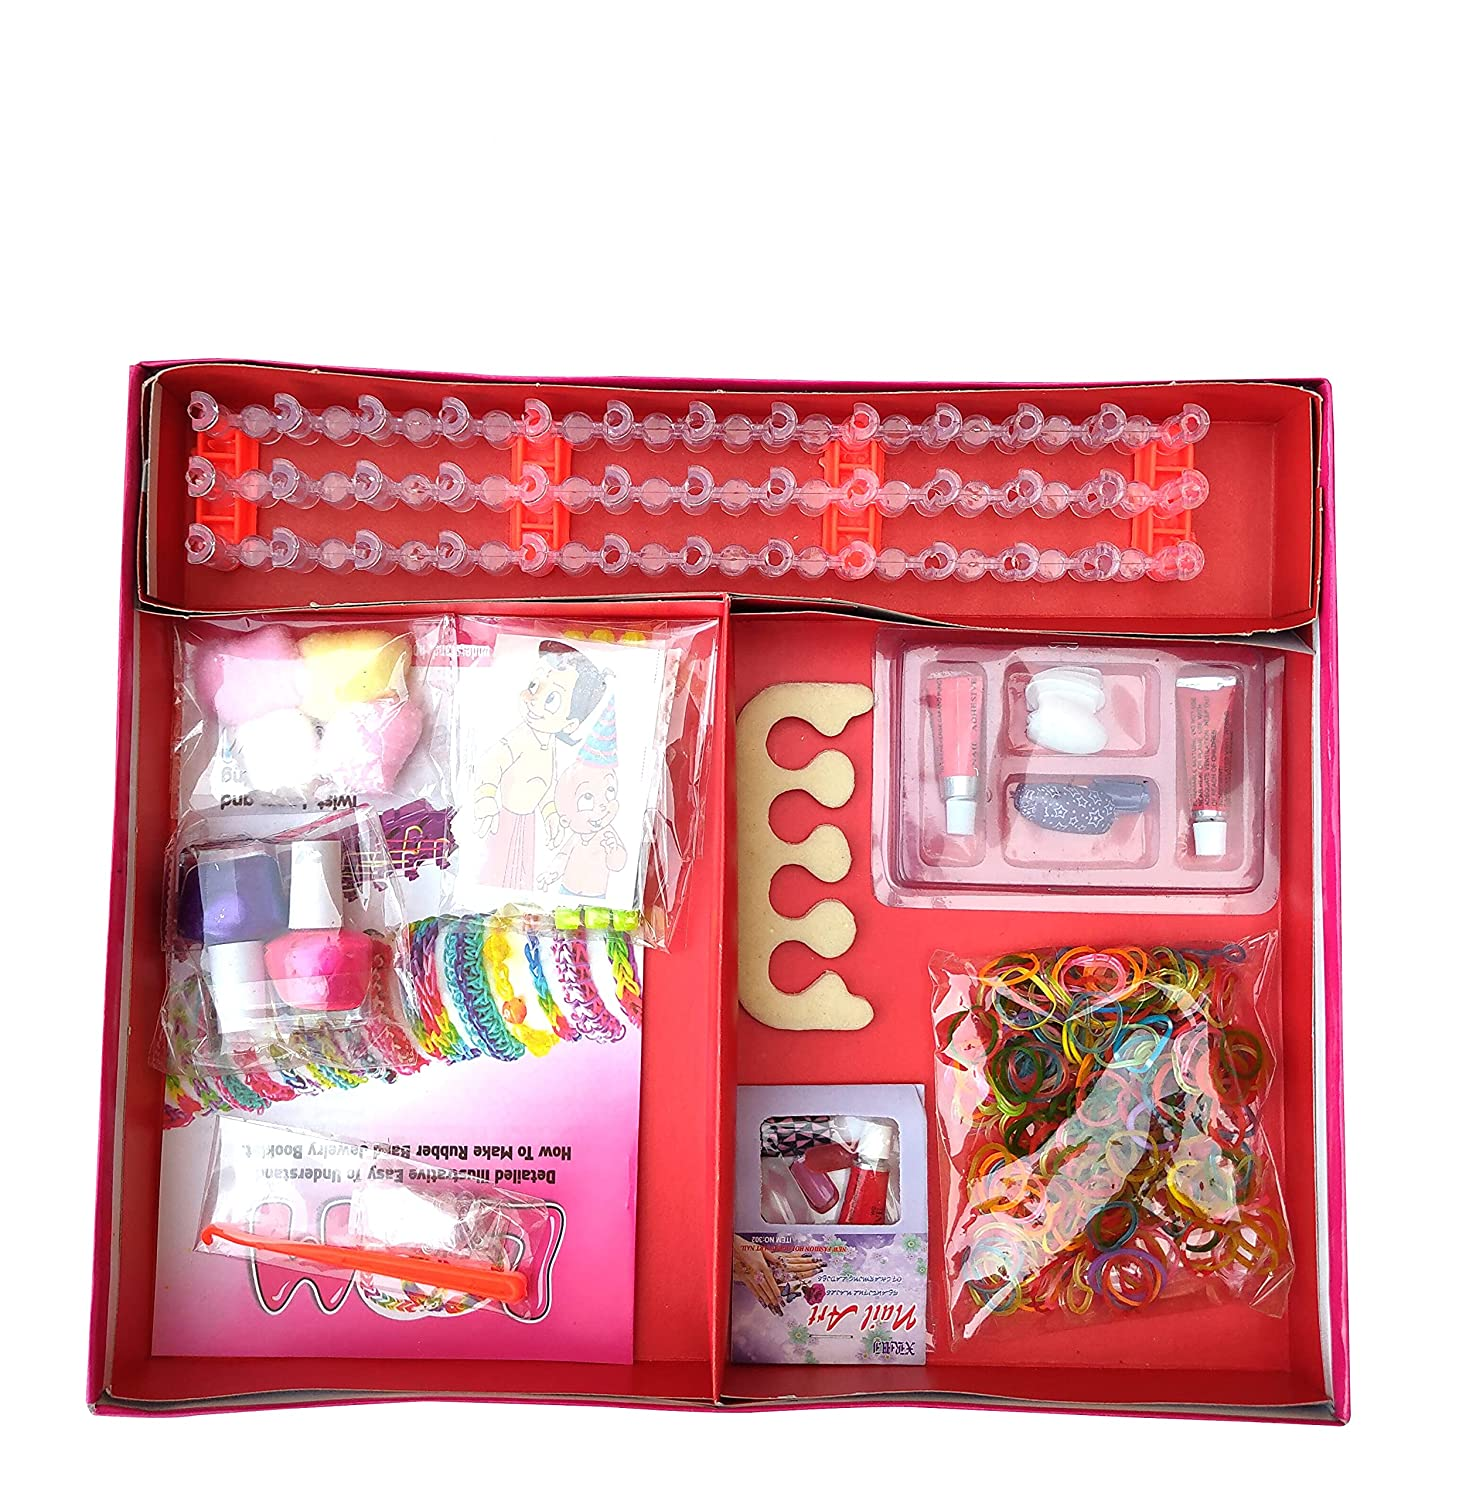 Prospo 3in1 Girls Games, Nail Art - Loom Kit � Jewelry Game, Board Game for Kids, Exclusive Birthday Gift for Girls, Kids Games